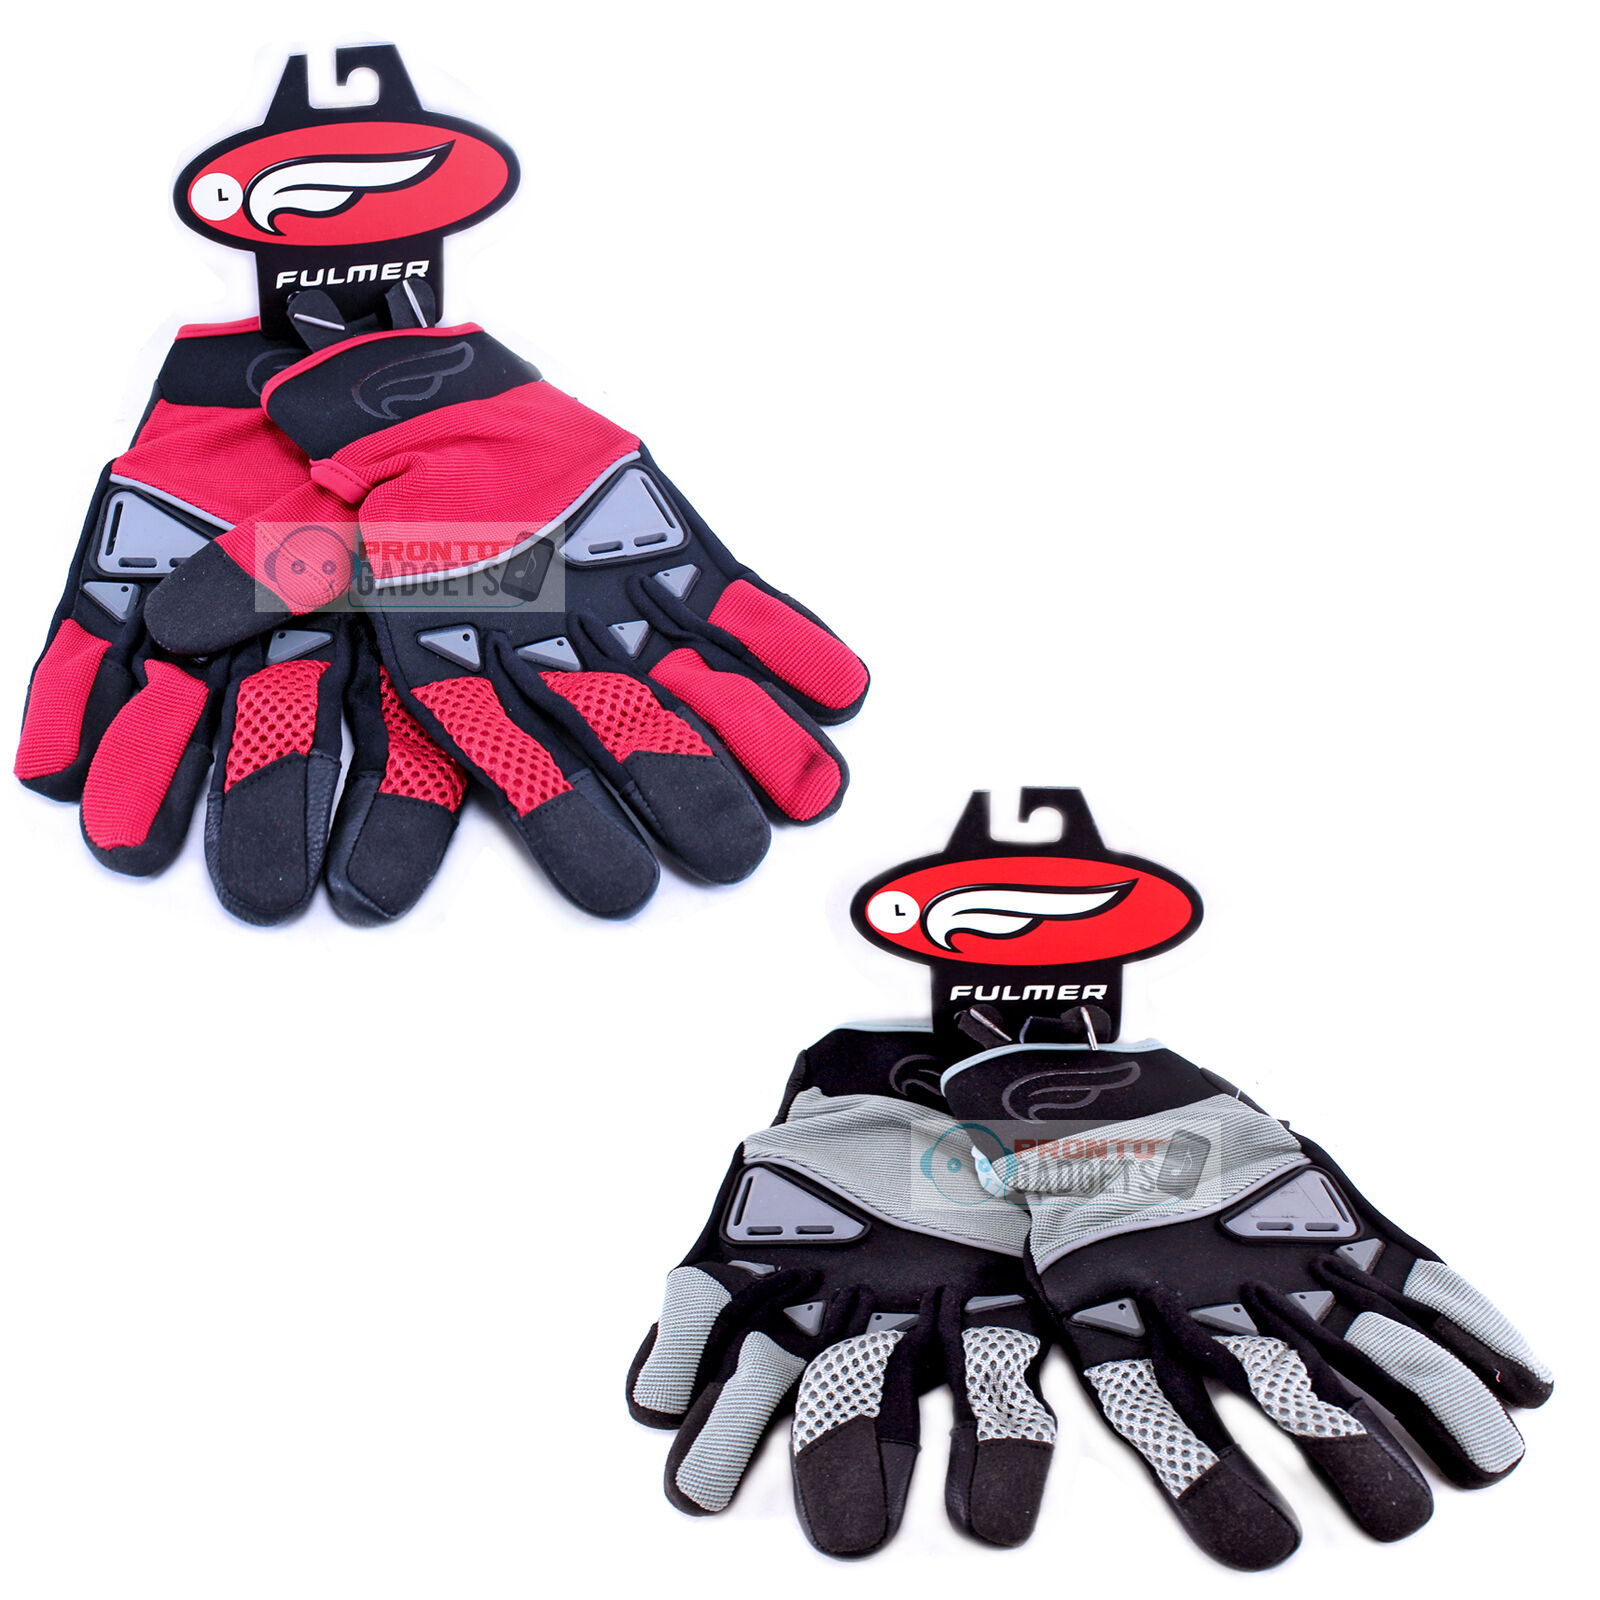 Fulmer Men's Motorcycle Gloves GT92 Gel Comfort Riding Hand Palm Protection